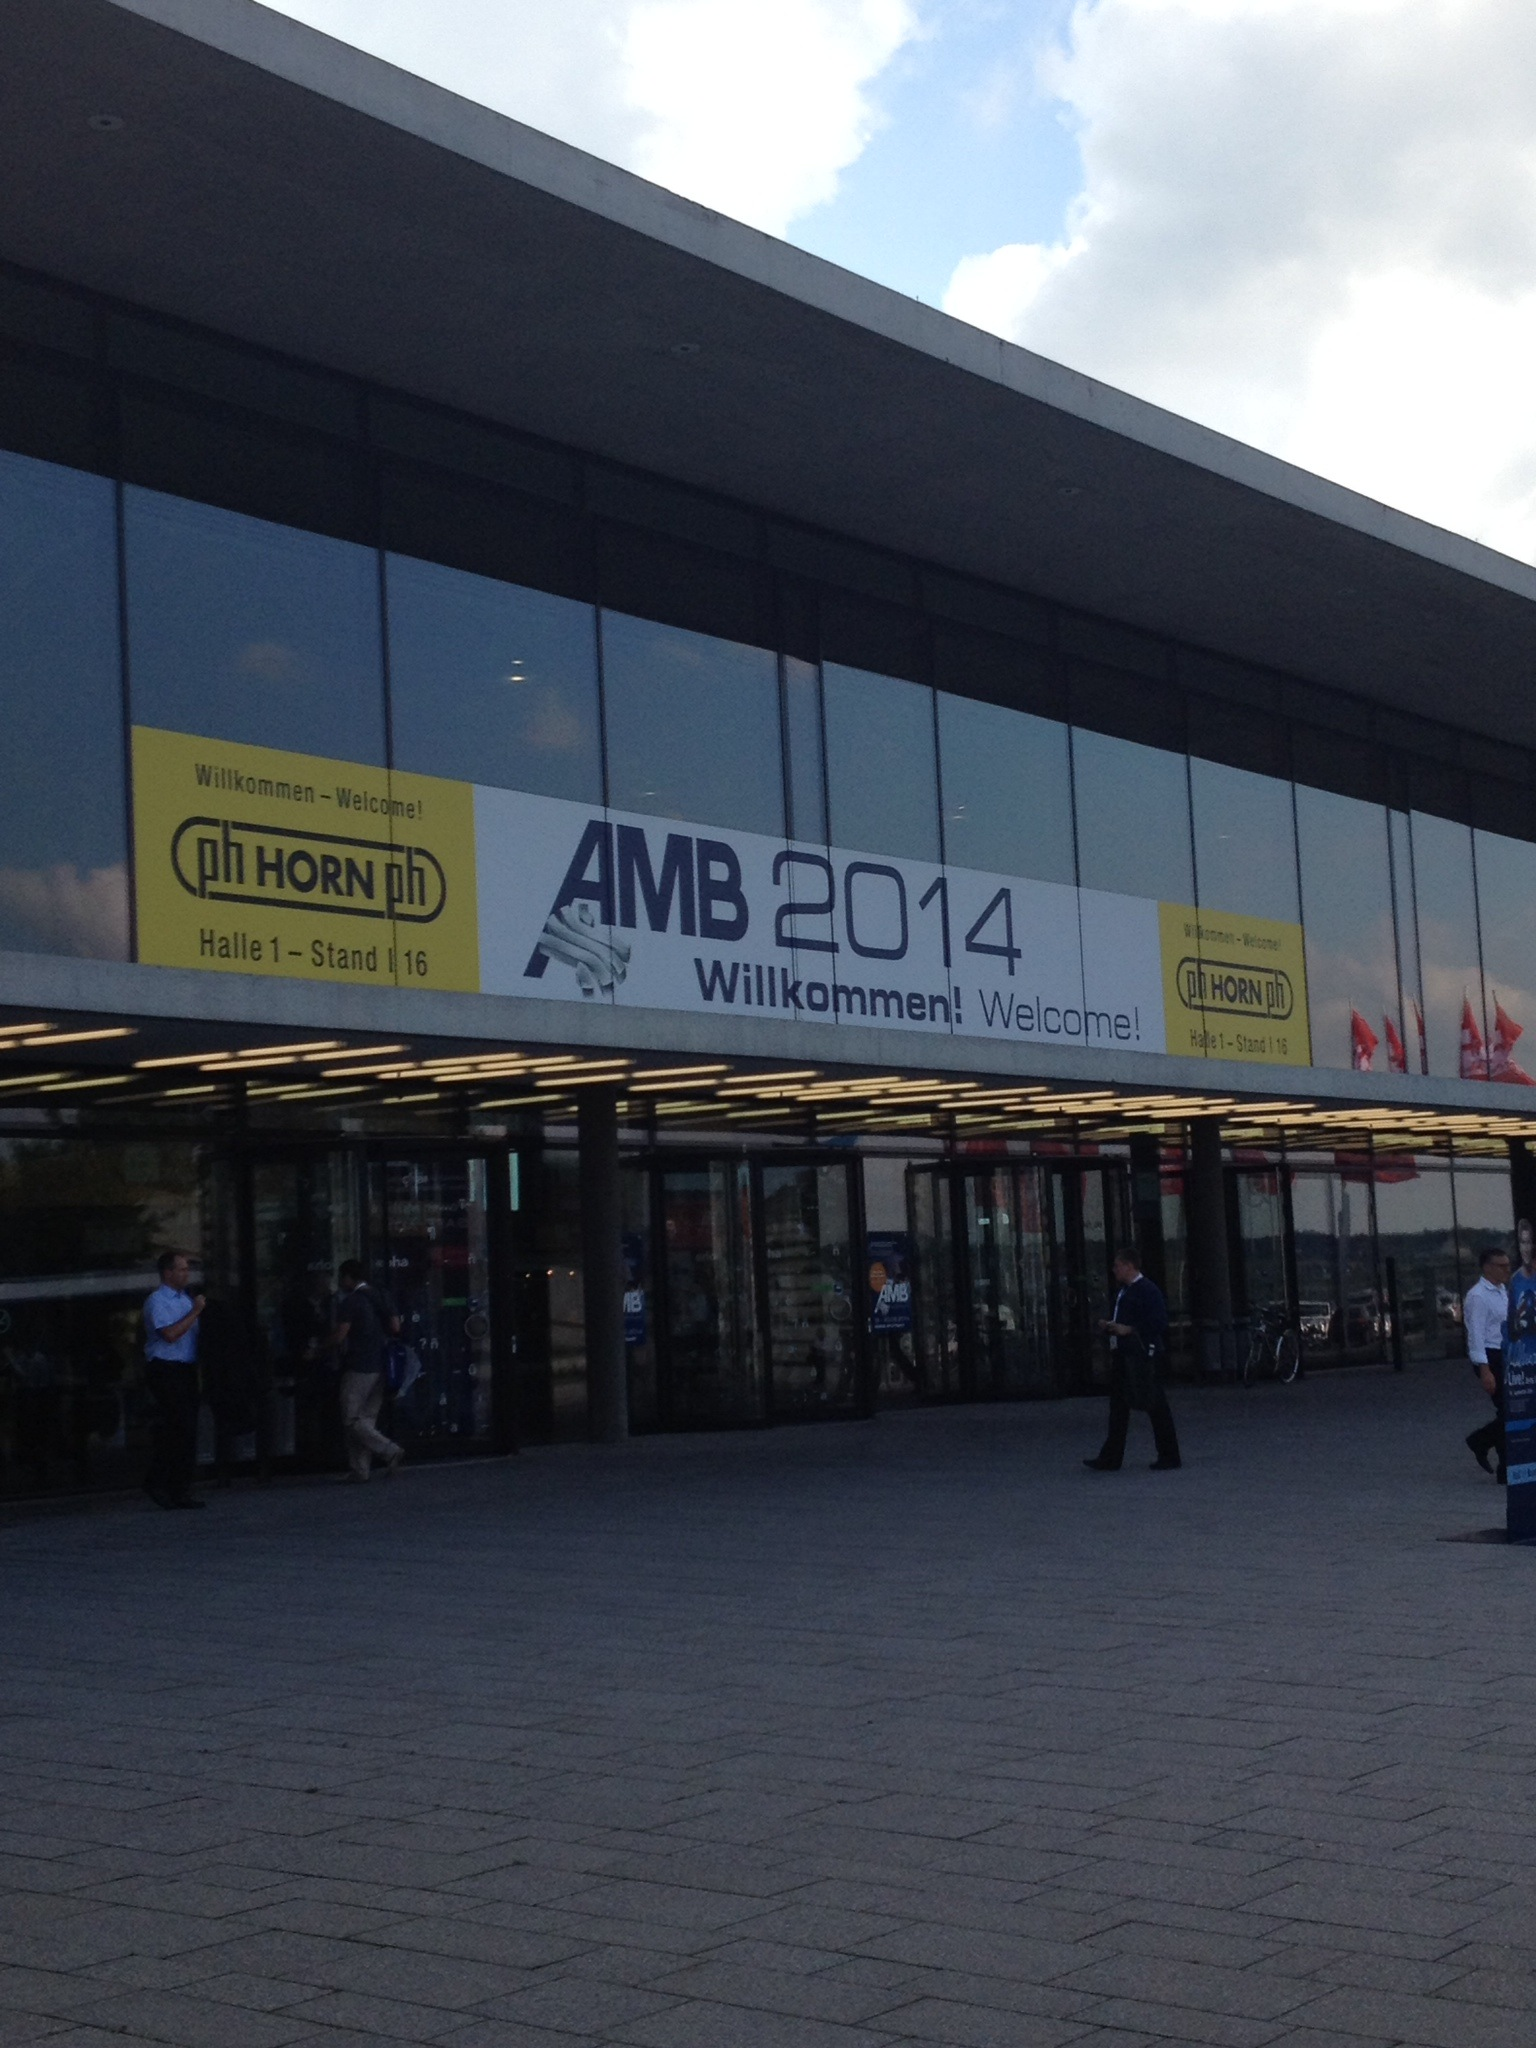 AMD 2014 Wilkommen! Welcome!